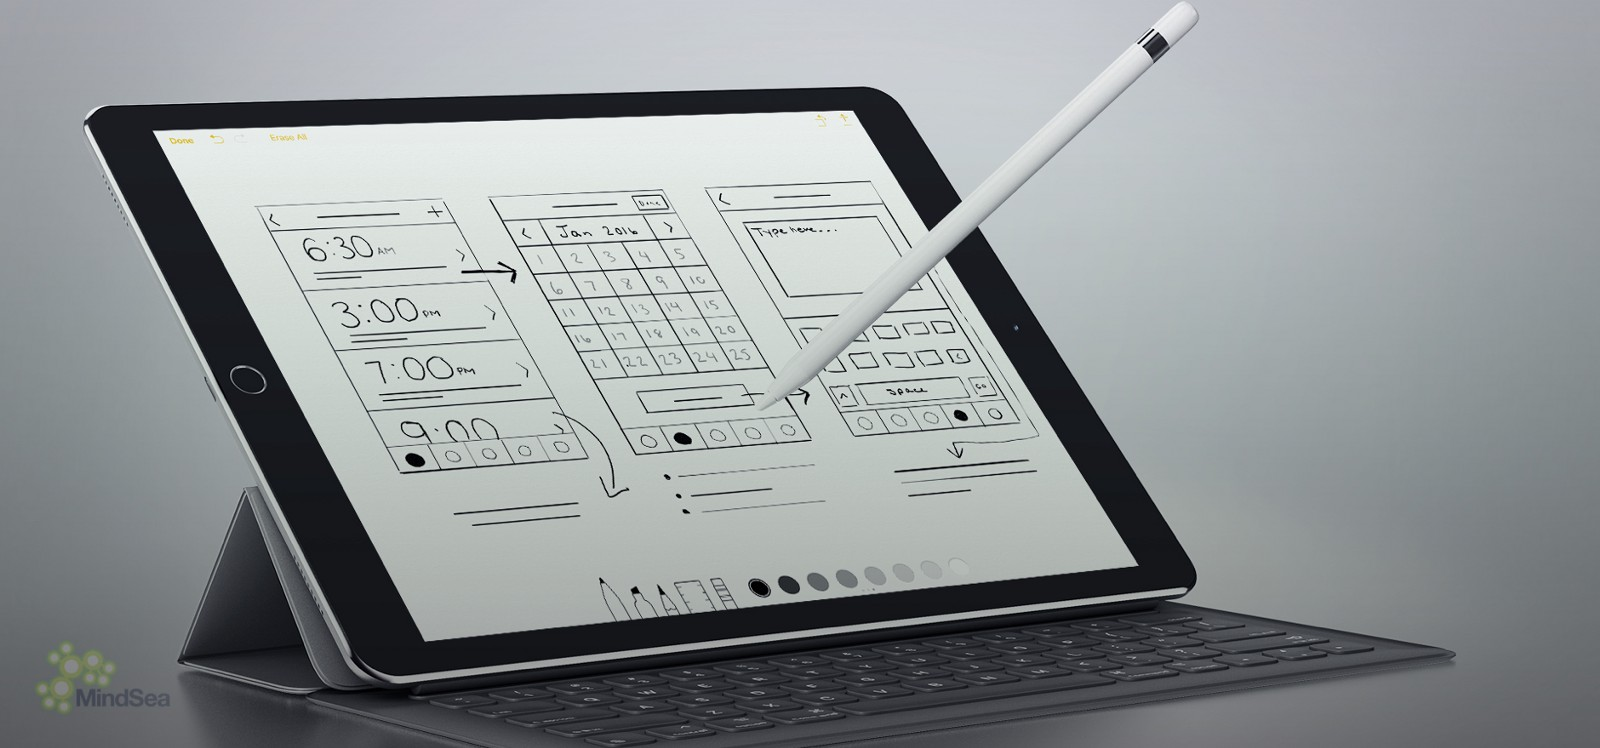 A ux designers review of ipad pro mindsea medium weve been using the default notes app for sketching the reason why is because our sketches still look like they were done by hand with pencil malvernweather Images